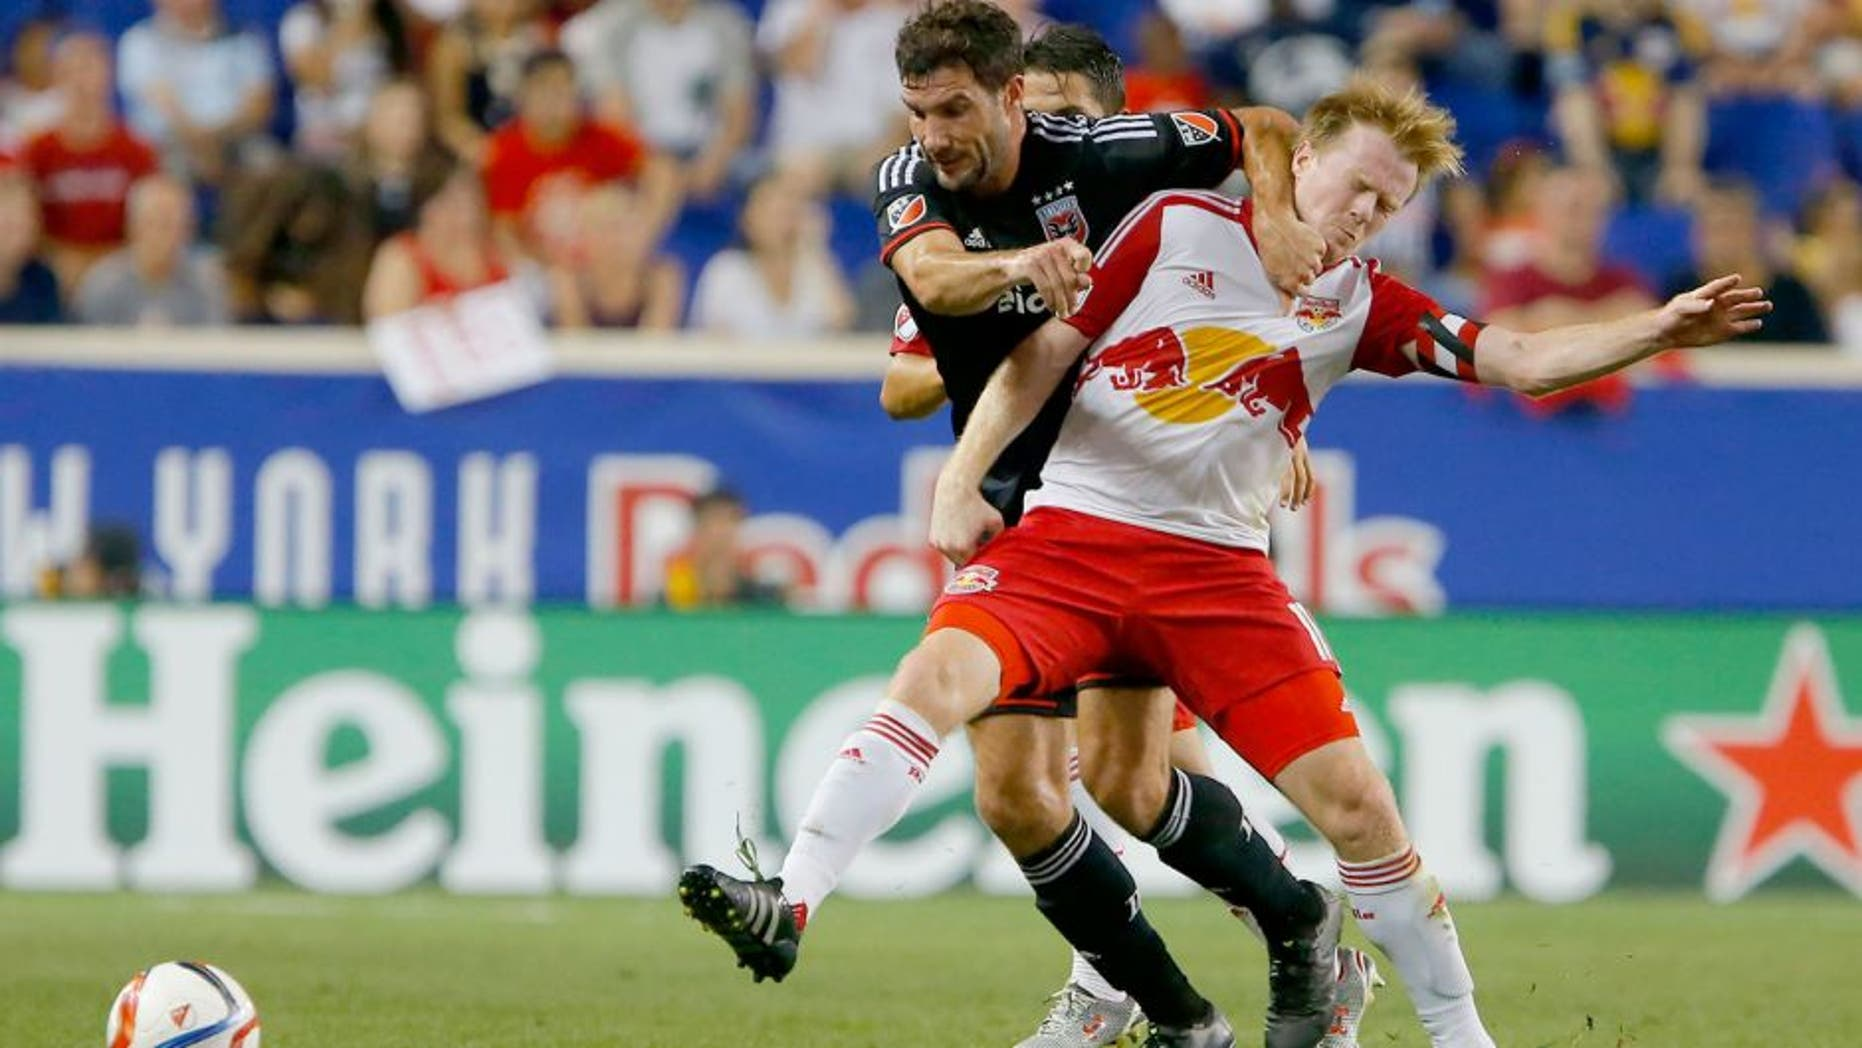 Aug 30, 2015; Harrison, NJ, USA; D.C. United midfielder/forward Chris Pontius (13) and New York Red Bulls midfielder Dax McCarty (11) battle for the ball during first half at Red Bull Arena. Mandatory Credit: Noah K. Murray-USA TODAY Sports